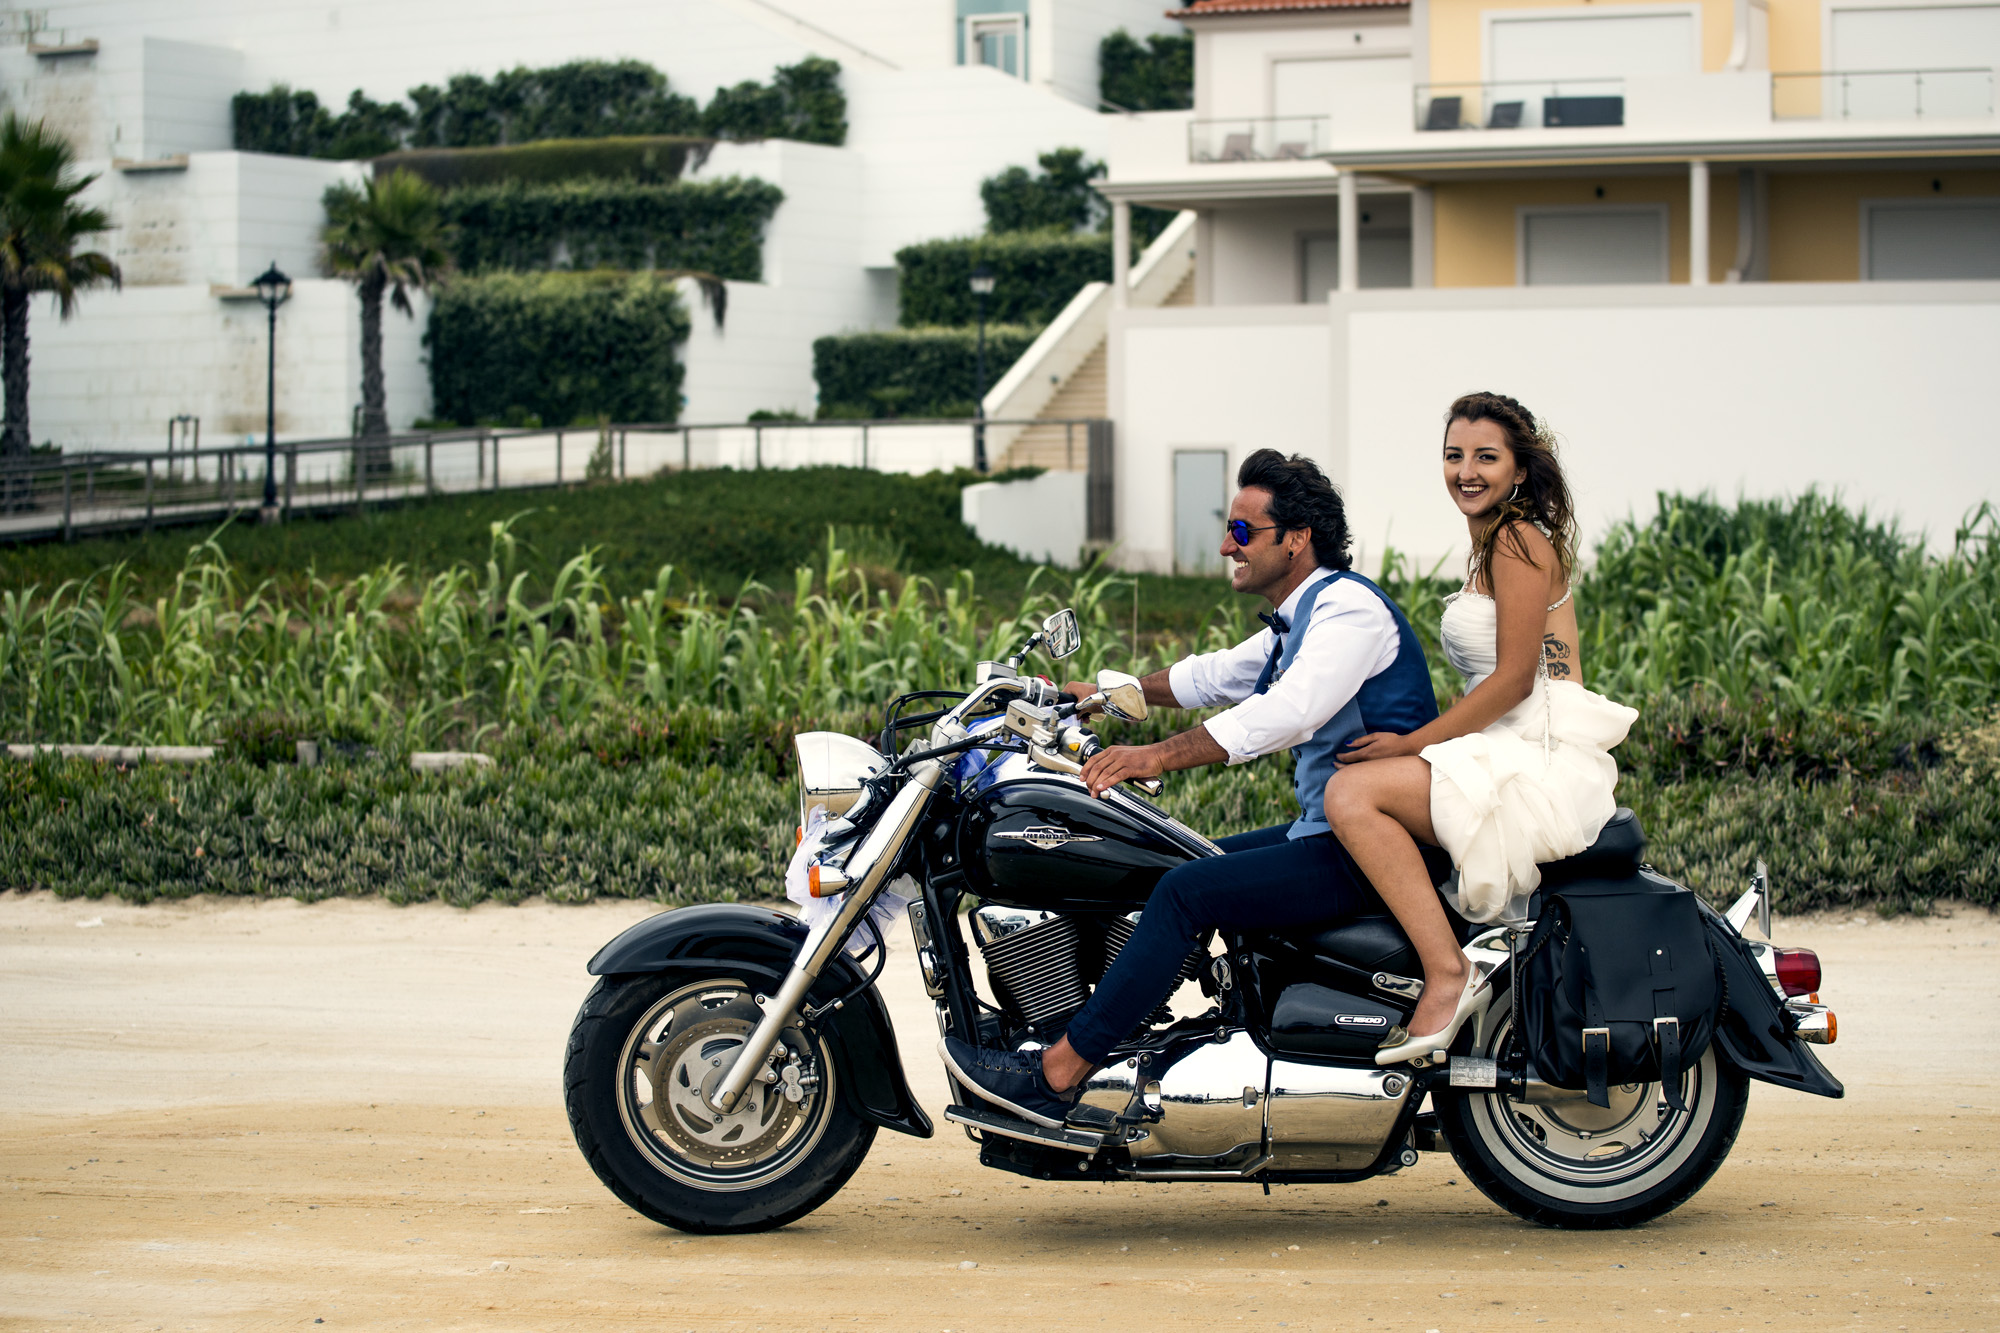 - The father of the bride took her to the ceremony on the back of his motorbike with a convoy of family cars behind beeping and waving in celebration as they went.